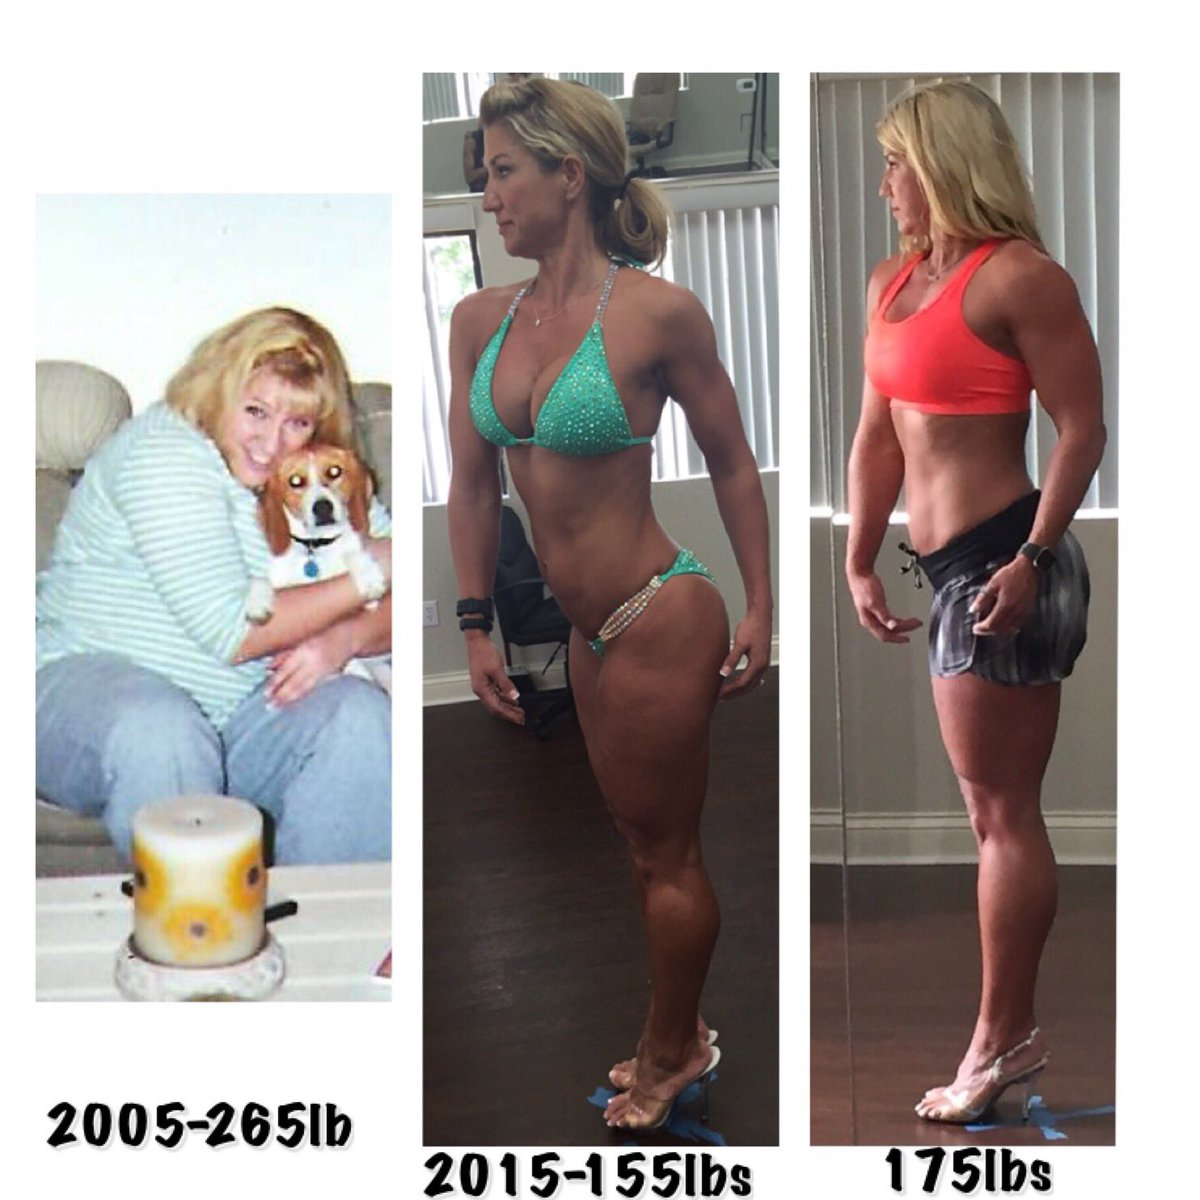 Much farther from what I once was. Not even close to what I'm going to be.  #transformationtuesday #fitfam https://t.co/29SU2giiPu